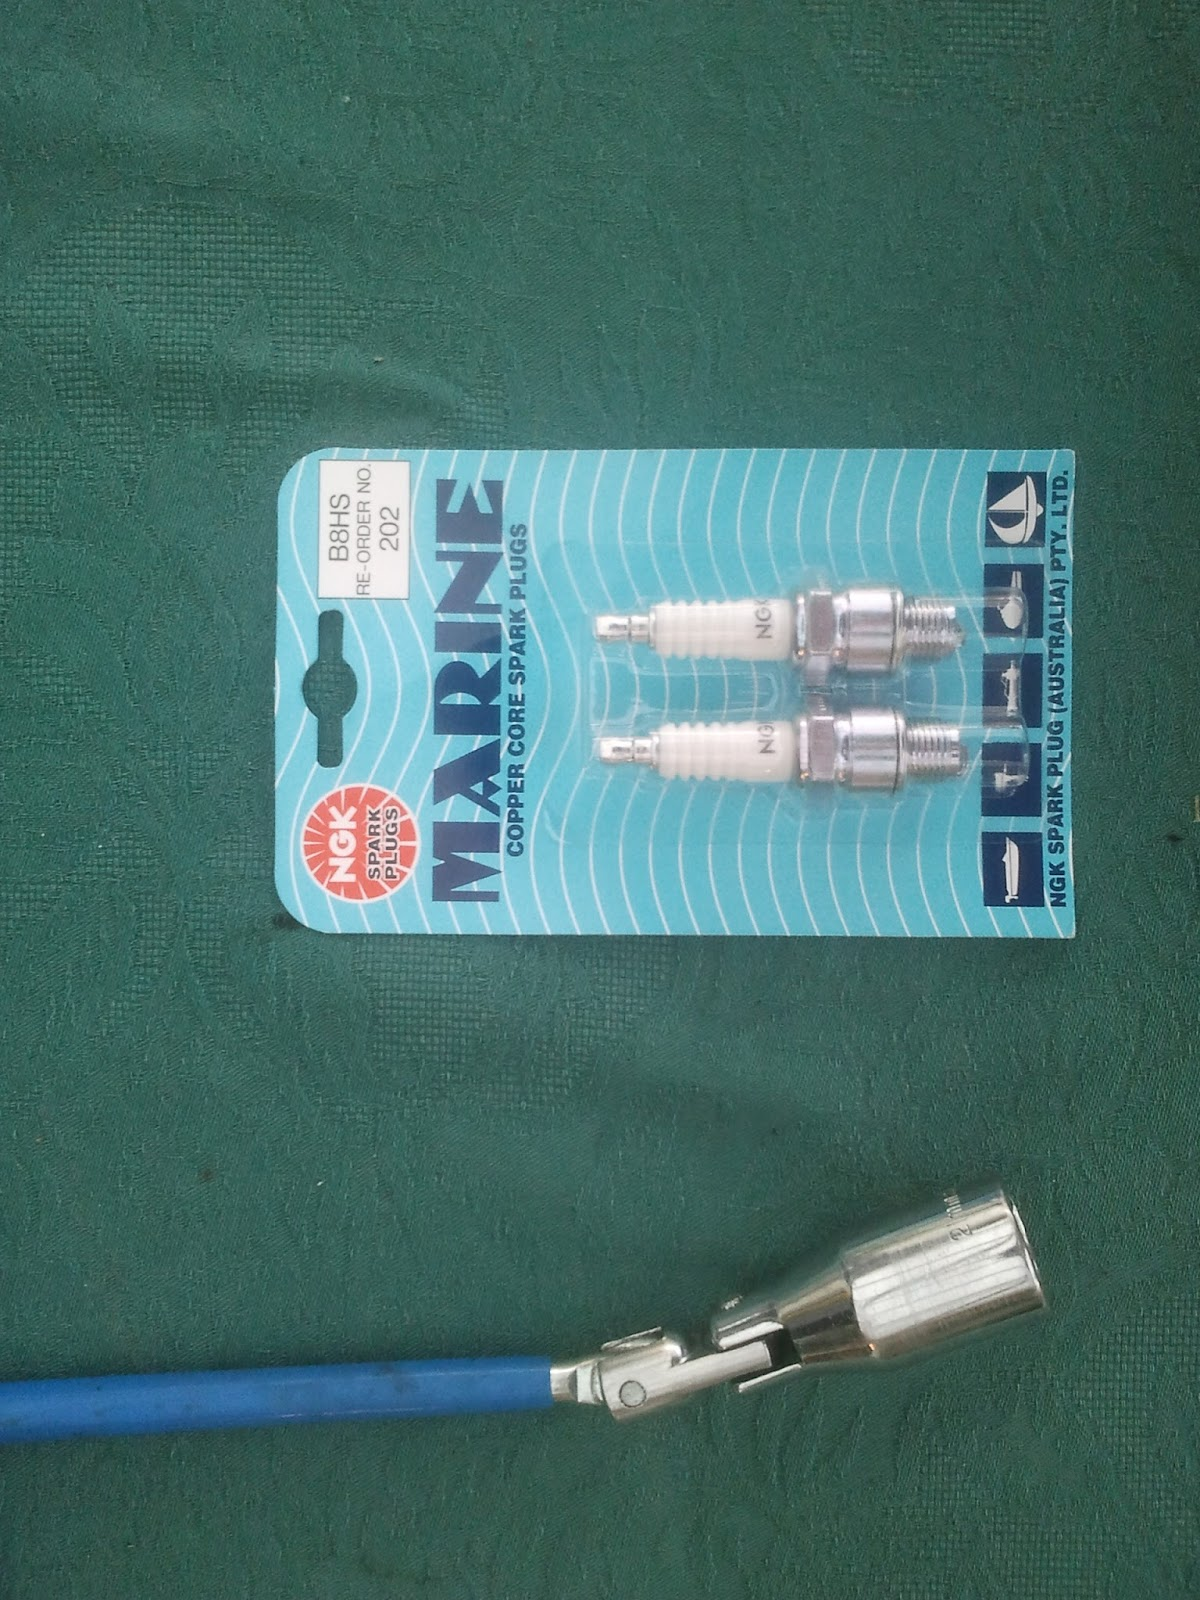 hight resolution of new spark plugs b8hs for the yamaha rd 125a